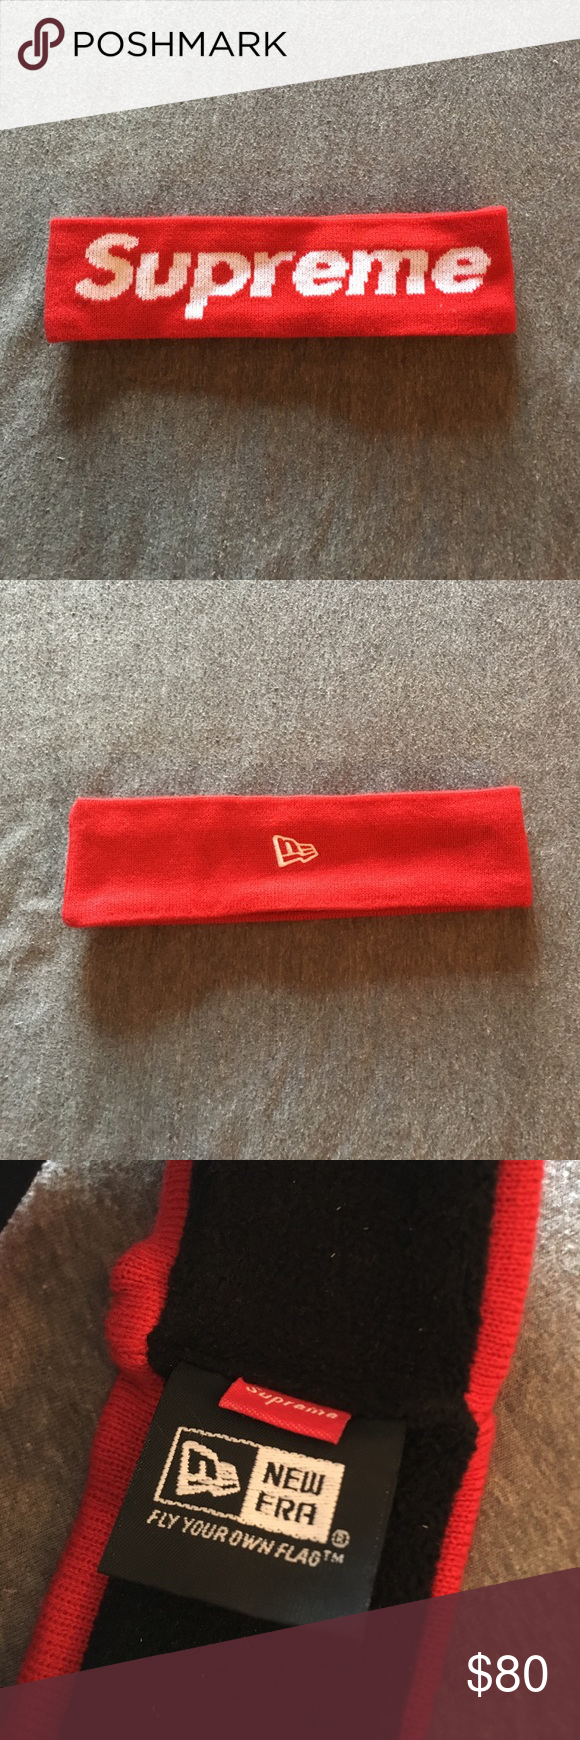 Supreme Headband Fw 14 Supreme Accessories Ear Warmers Things To Sell